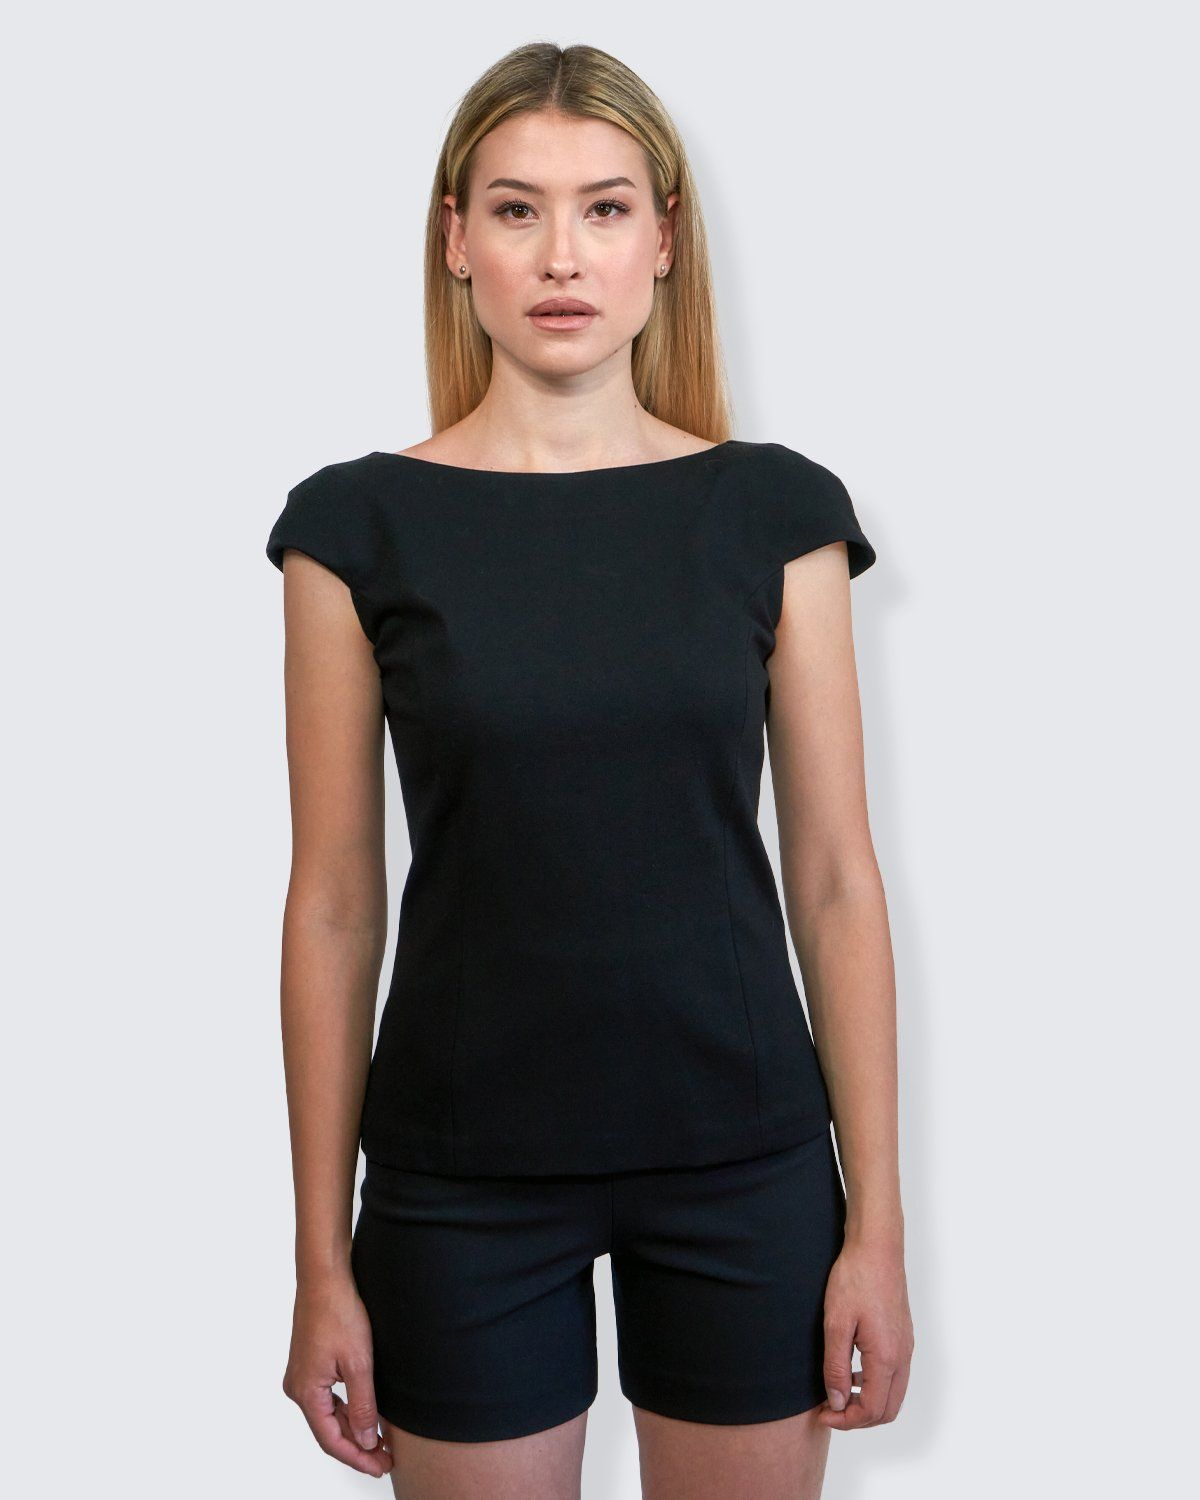 Passepartout - Top con Manica a Conchiglia top 322Couture 40 Nero